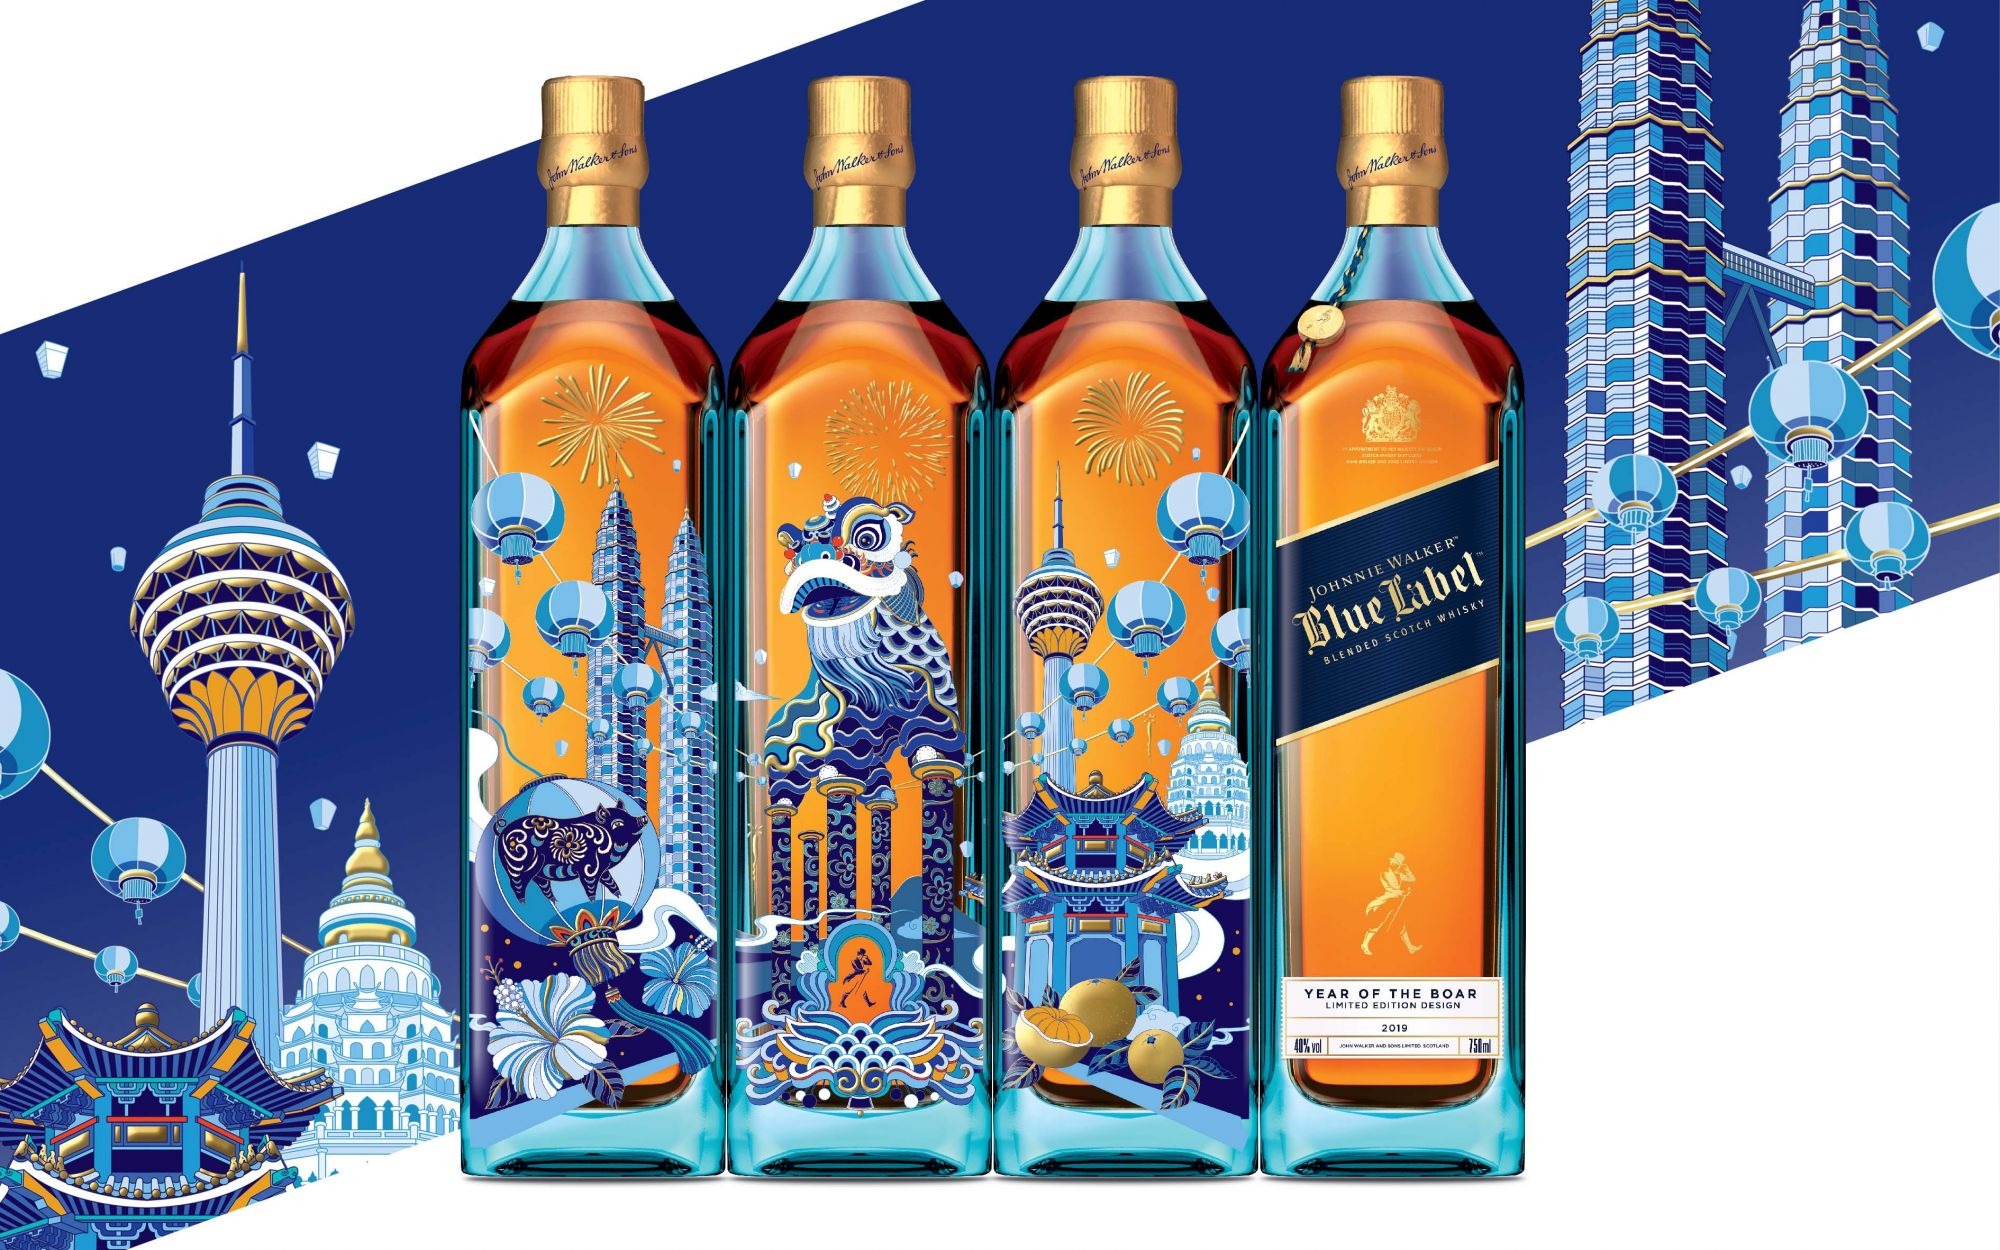 Collectible Chinese New Year Whiskies By Johnnie Walker And Glen Ord Distillery